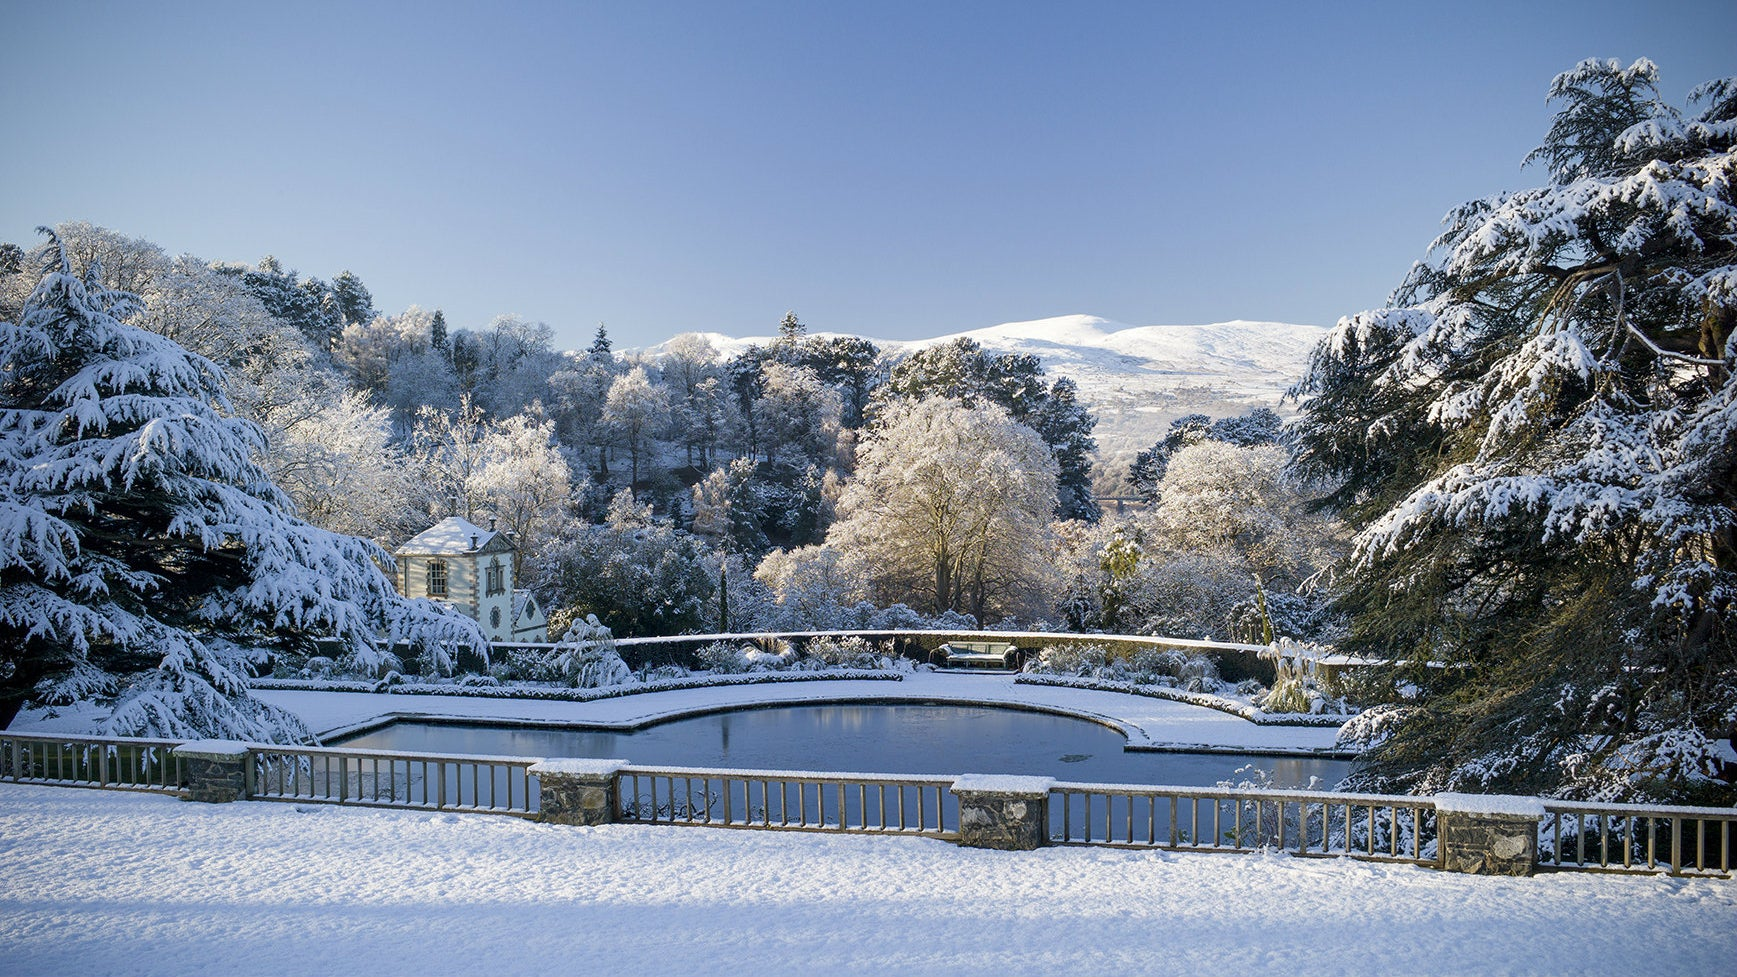 Bodnant Garden, Conwy - view in winter